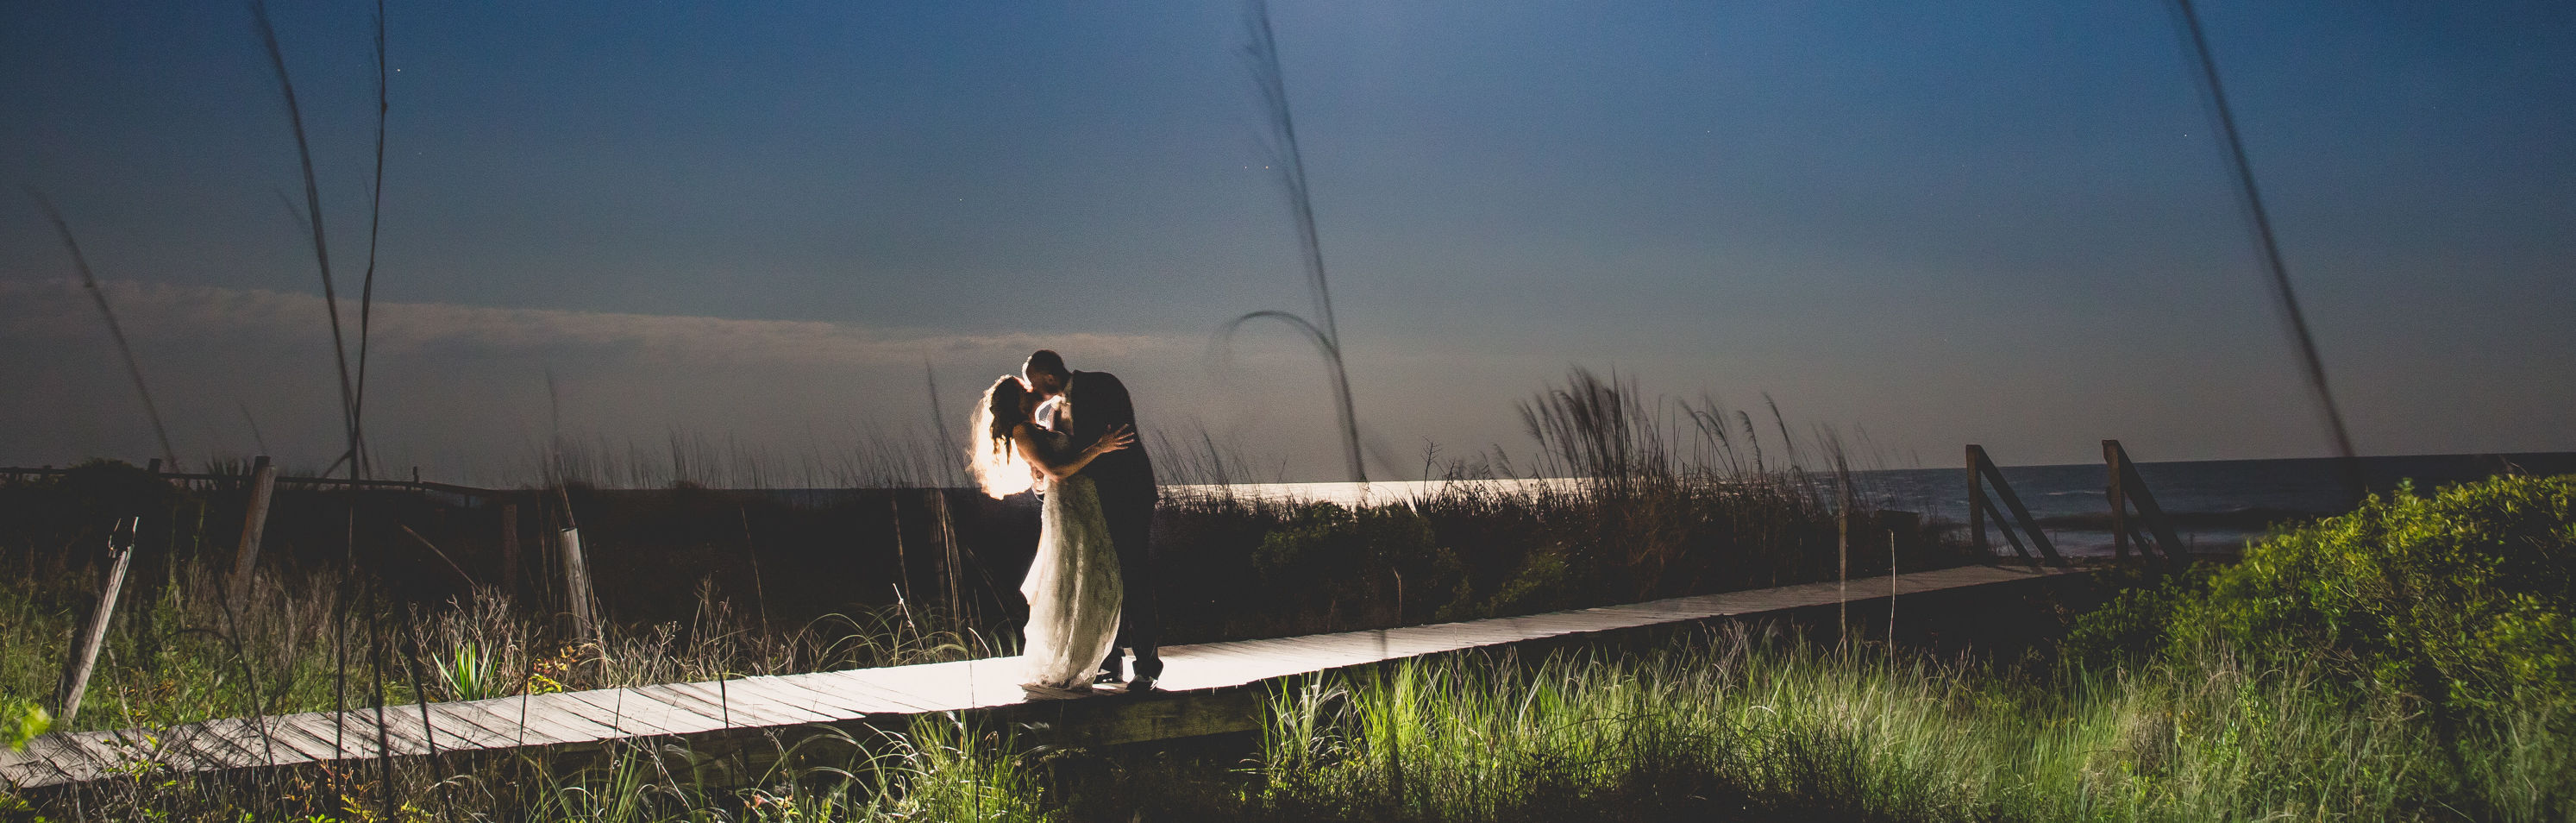 Wild Dunes_Weddings_Couples_NightBoardwalk